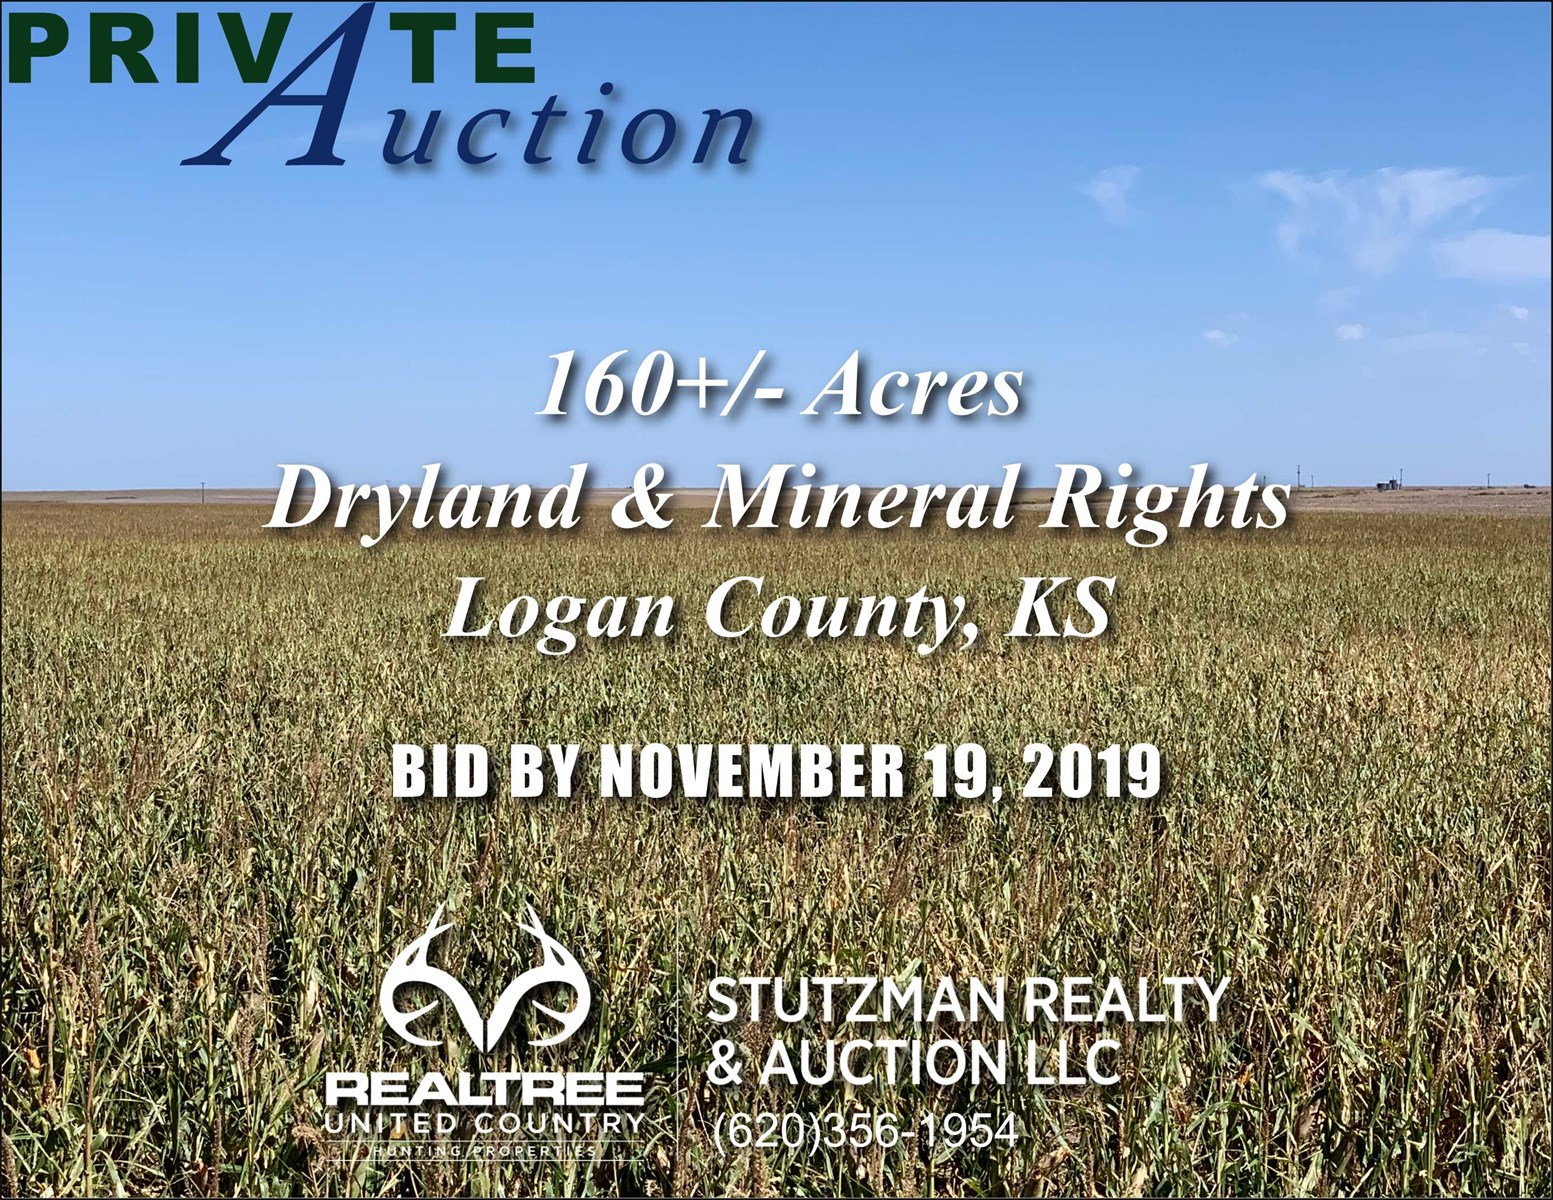 LOGAN COUNTY KS ~ 160+/-ACRE DRYLAND & MINERAL RIGHTS